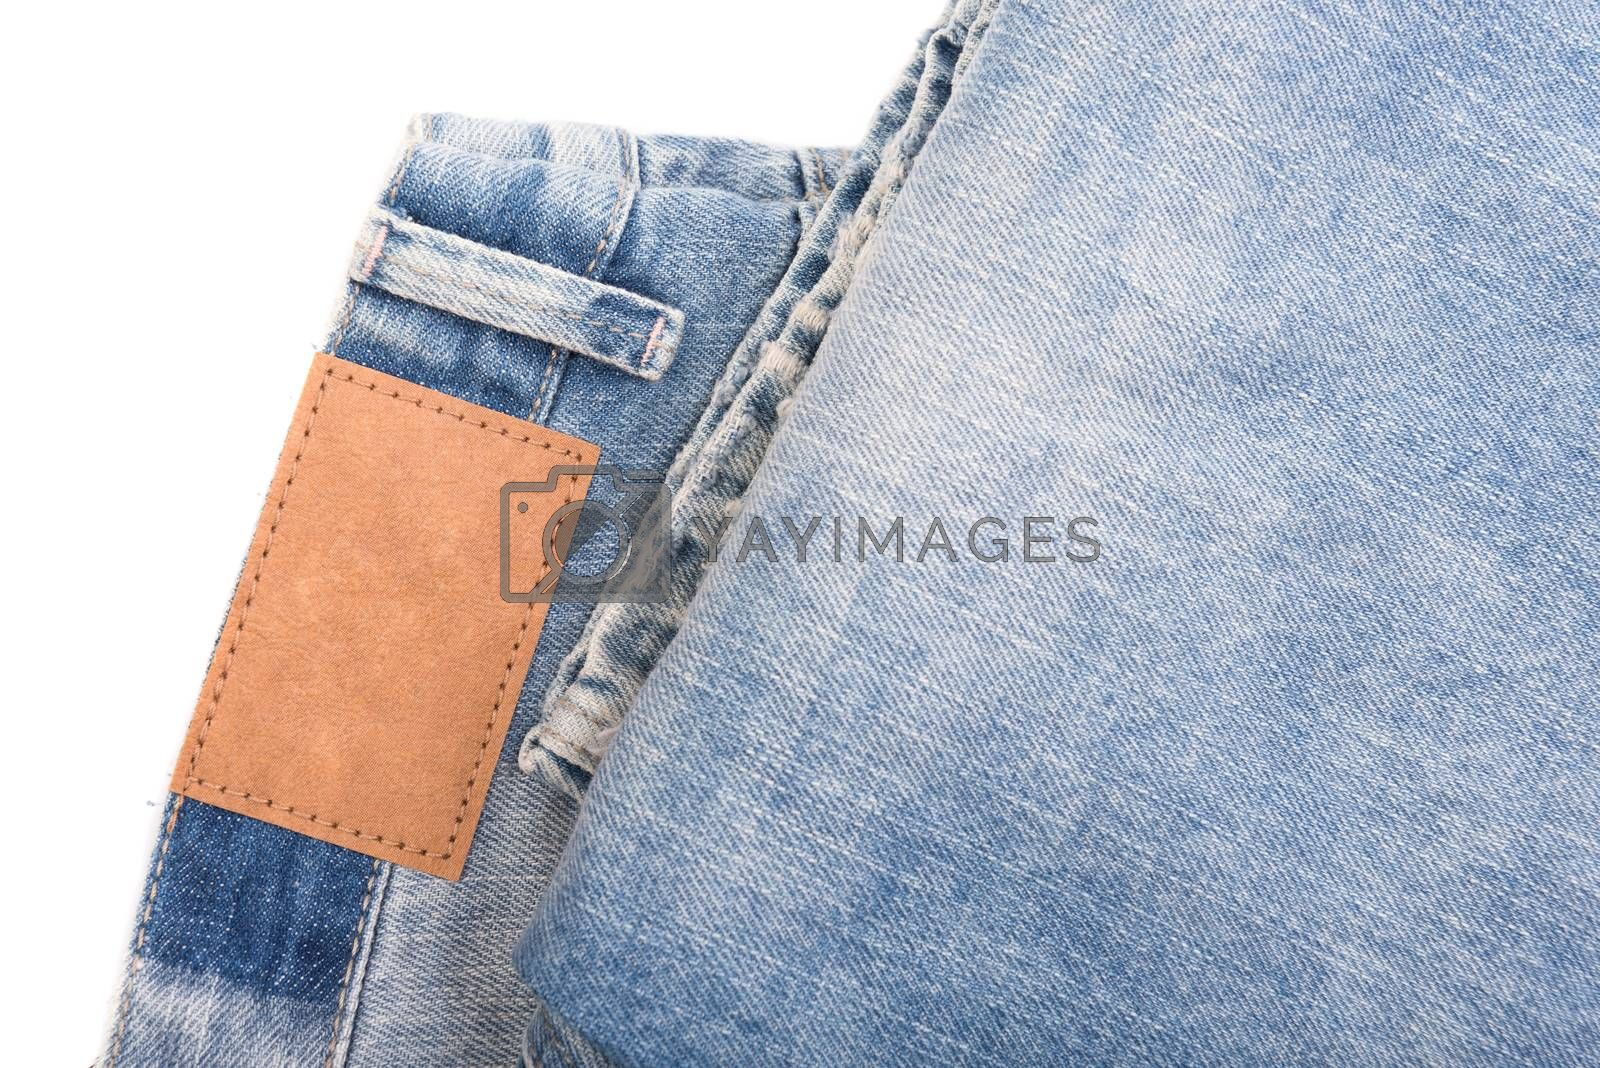 Jeans with leather label isolated on white background